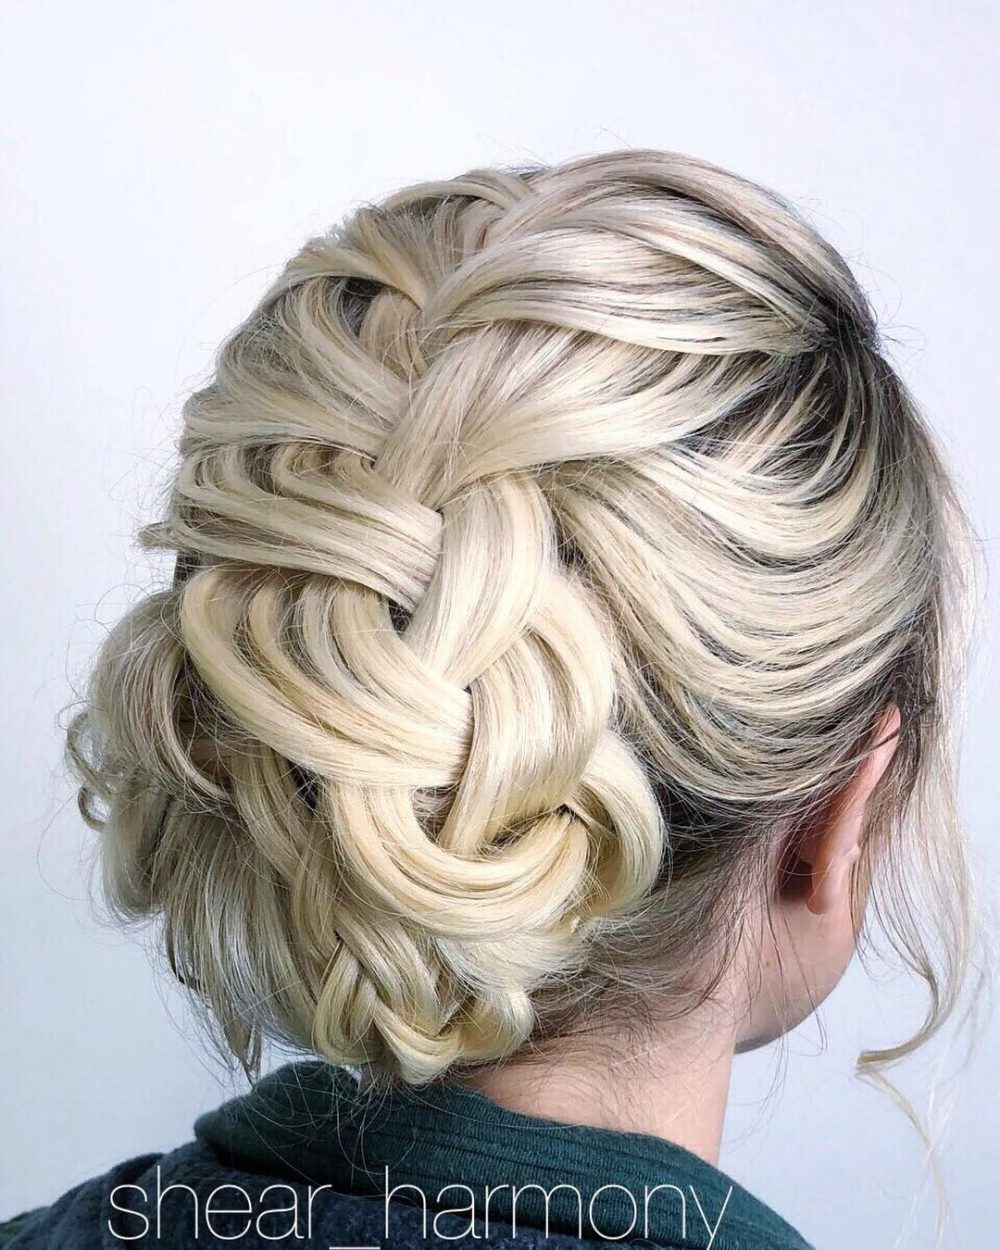 Romantic & Relaxed hairstyle